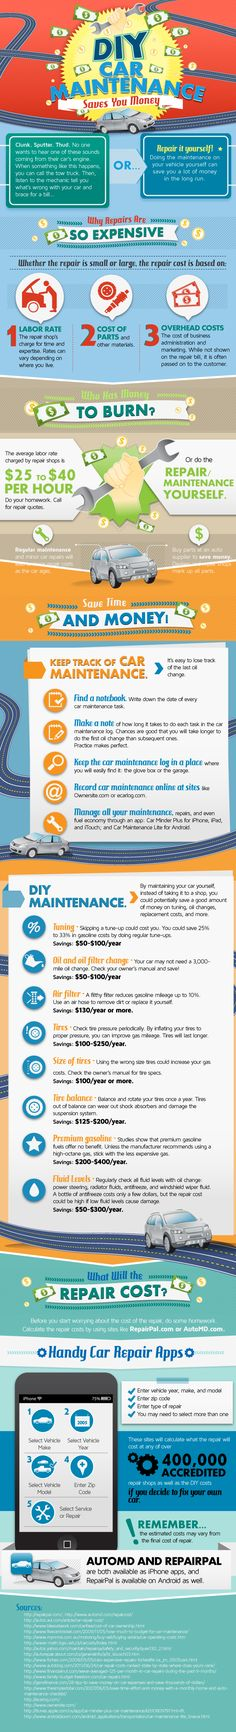 How Much You Could Save If You Did Car Maintenance Yourself infographic  Get your Quality, Double Opt-In, Surveyed, Responsive Buyer's Leads Today!  http://ibourl.com/1ohd